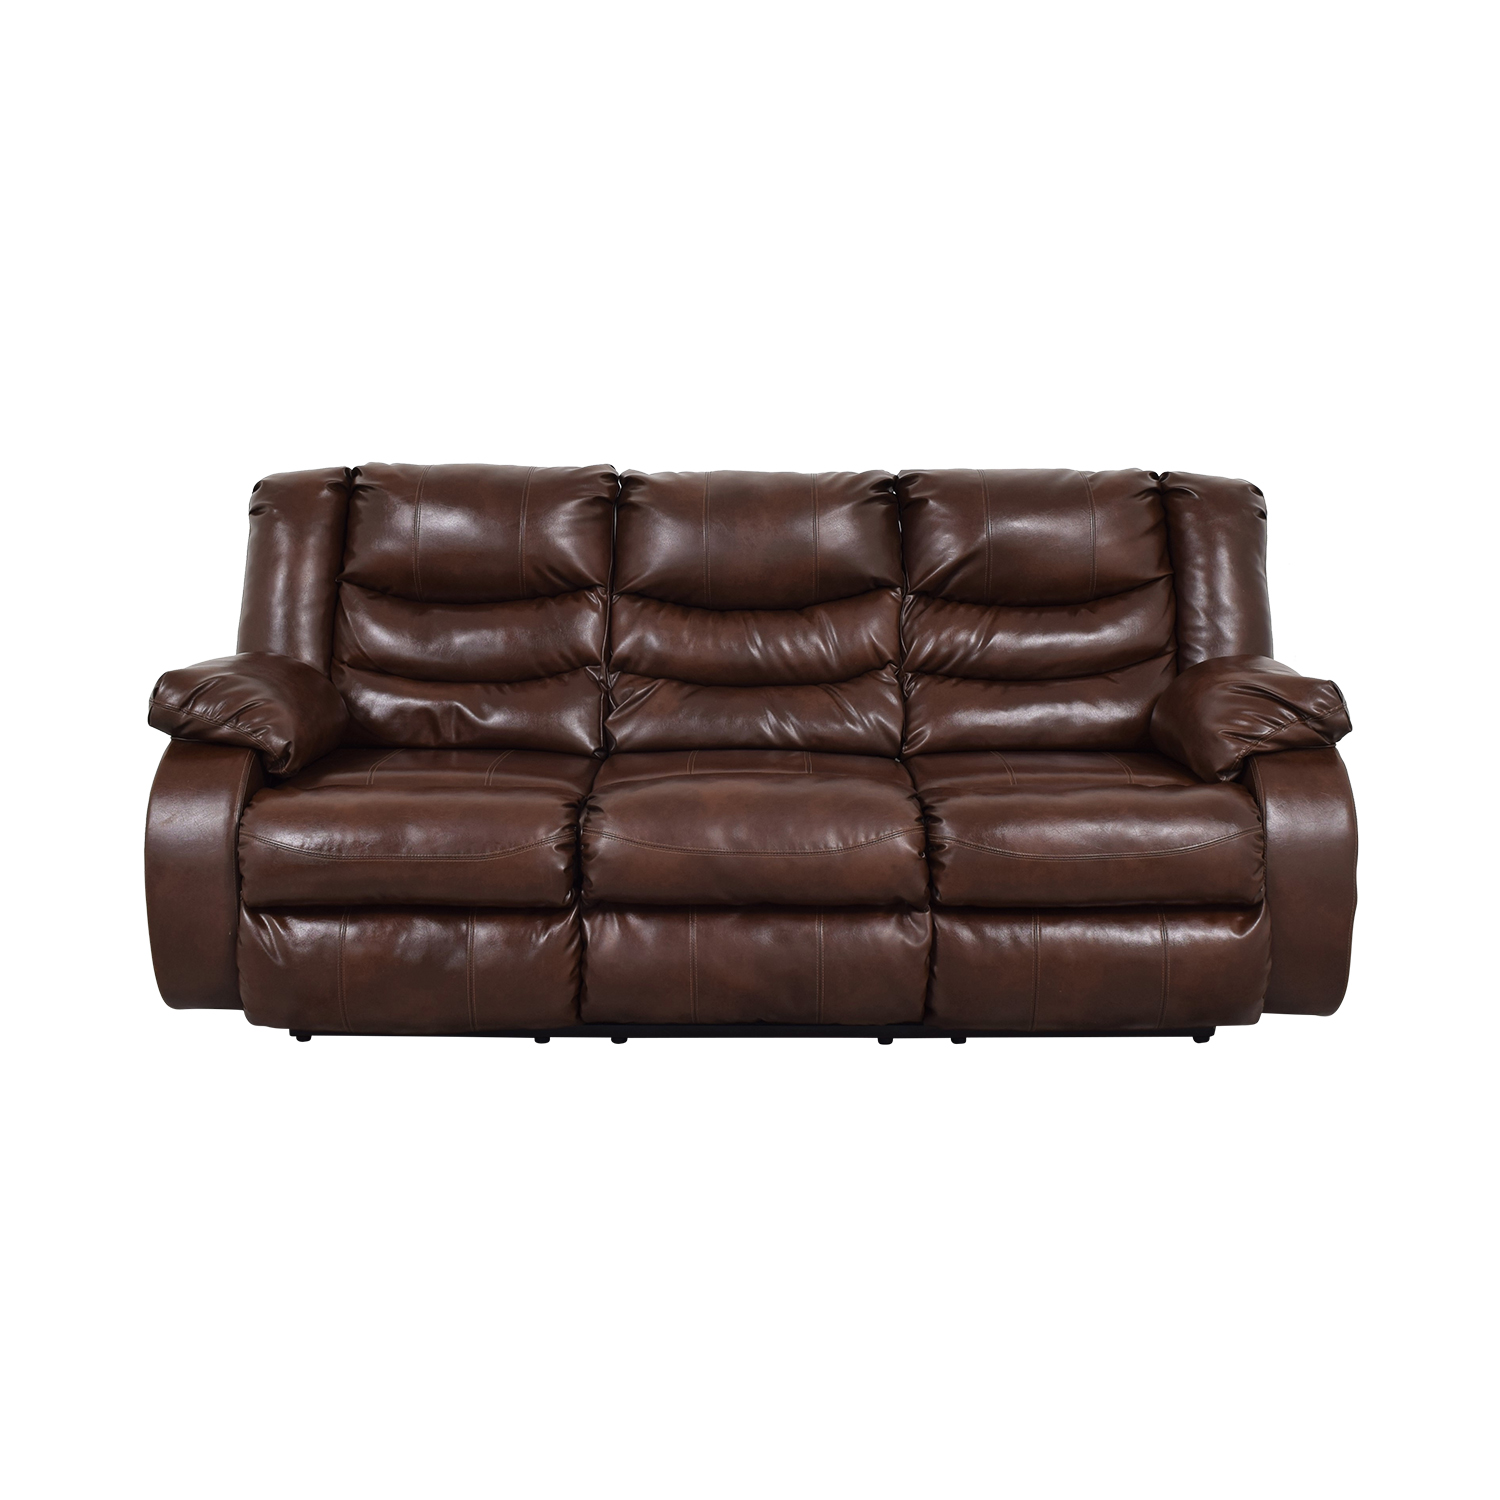 Three Seater Reclining Sofa used